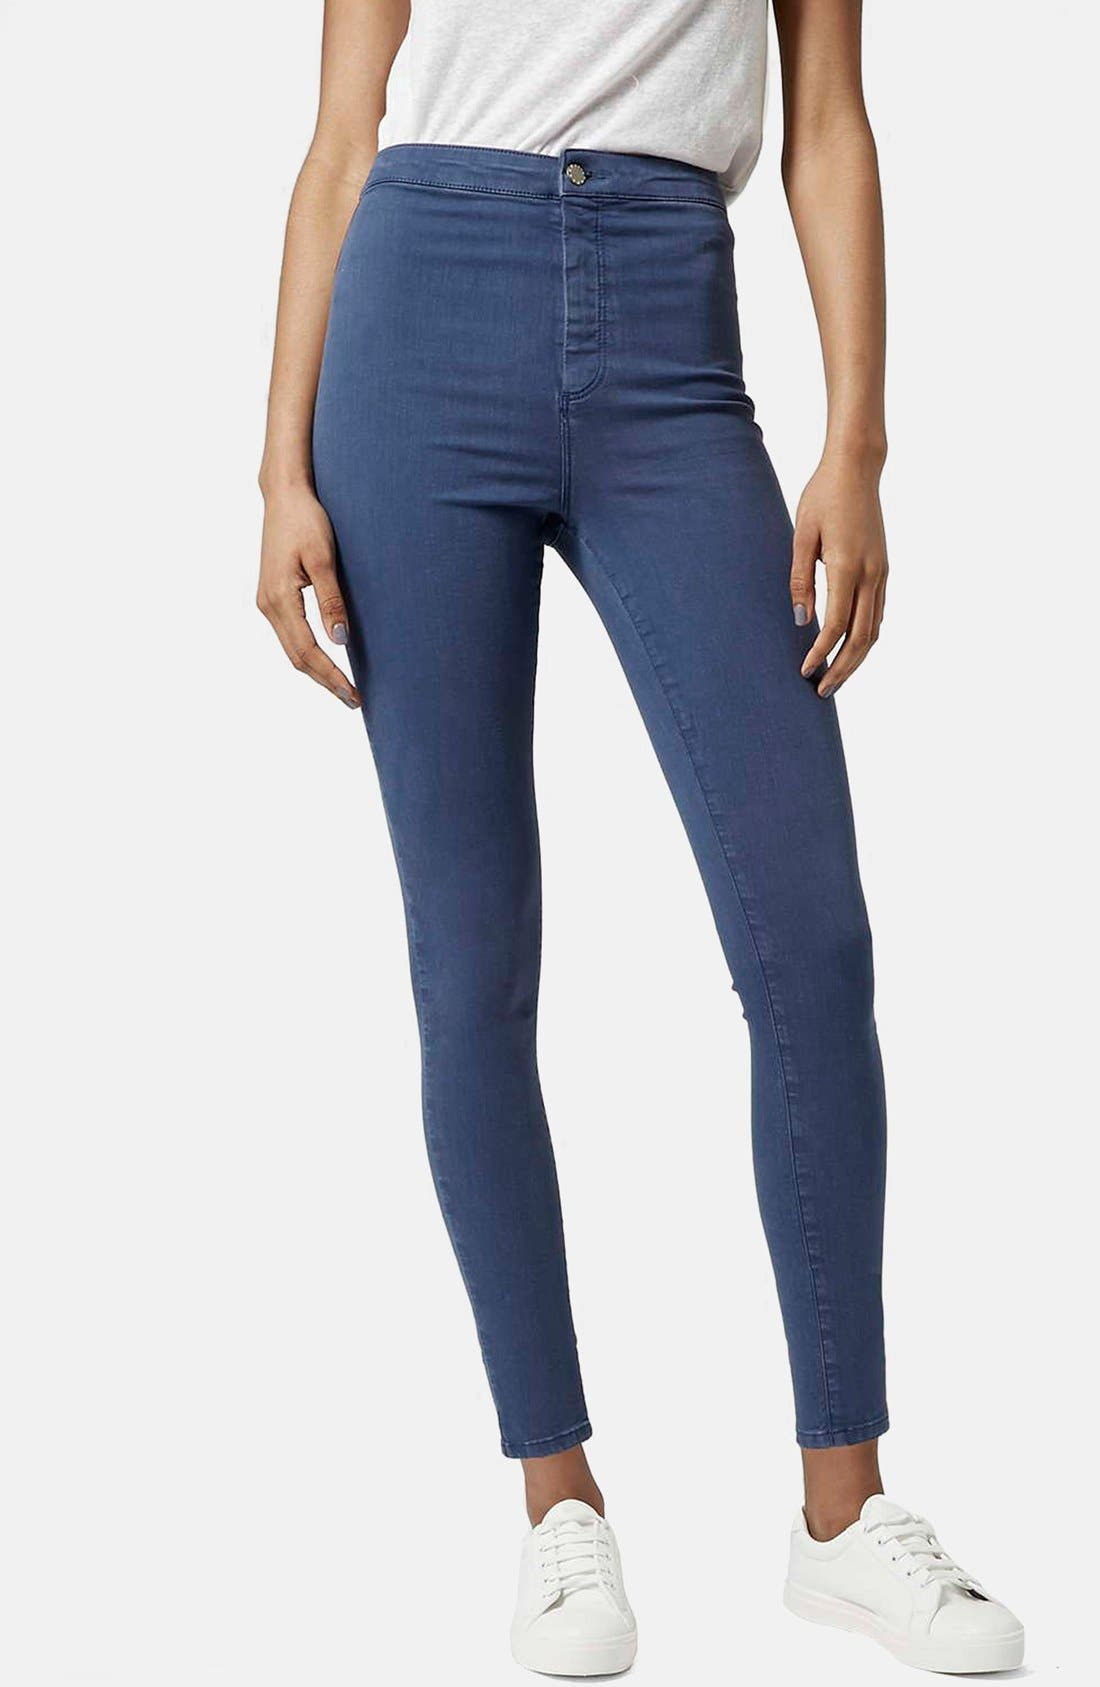 Alternate Image 1 Selected - Topshop Moto 'Joni' High Rise Skinny Jeans (Blue)